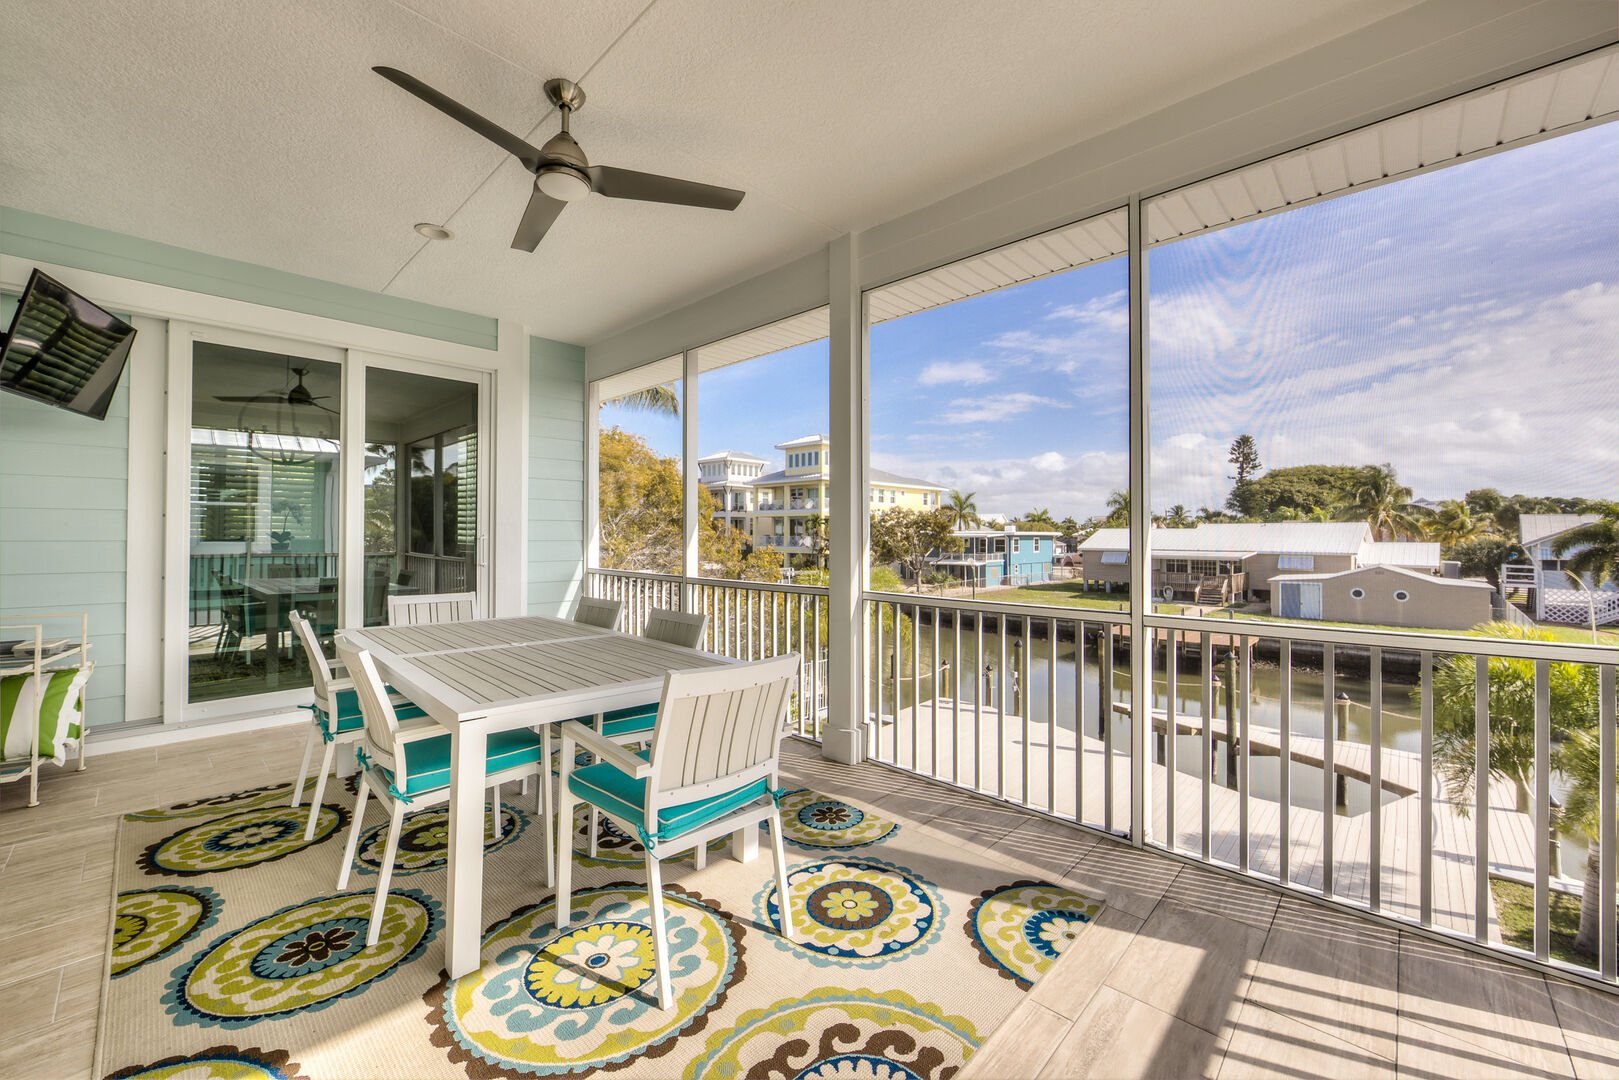 Waterfront Patio at Tidewater